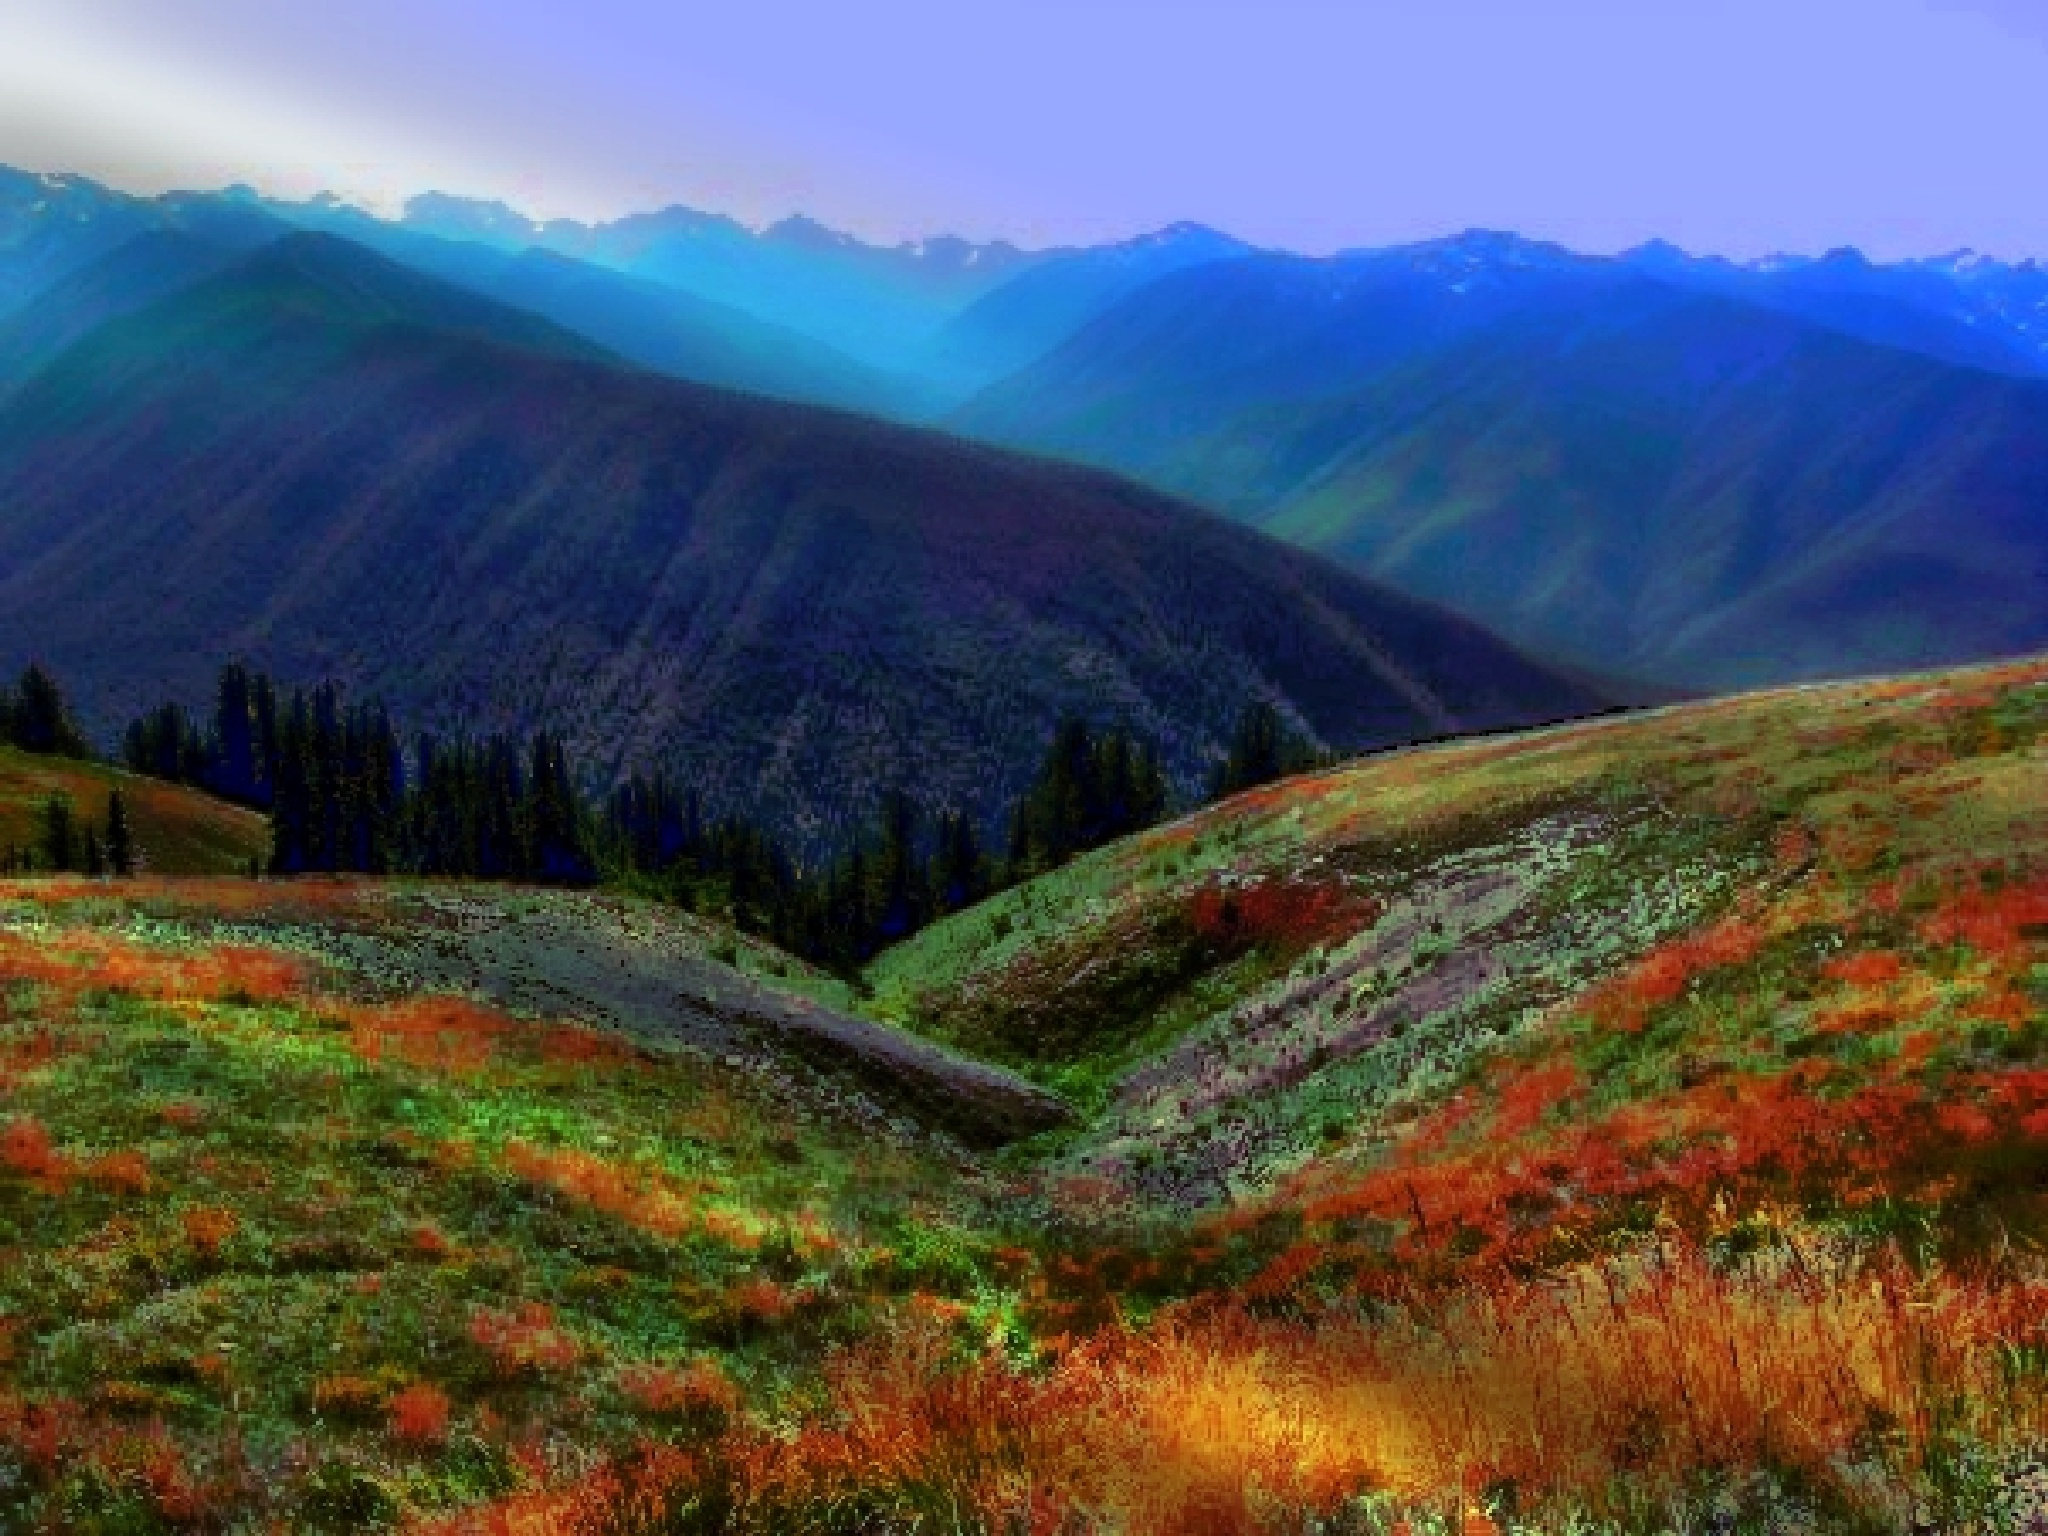 """ Hurricane Ridge"" by debra.devorenelson"